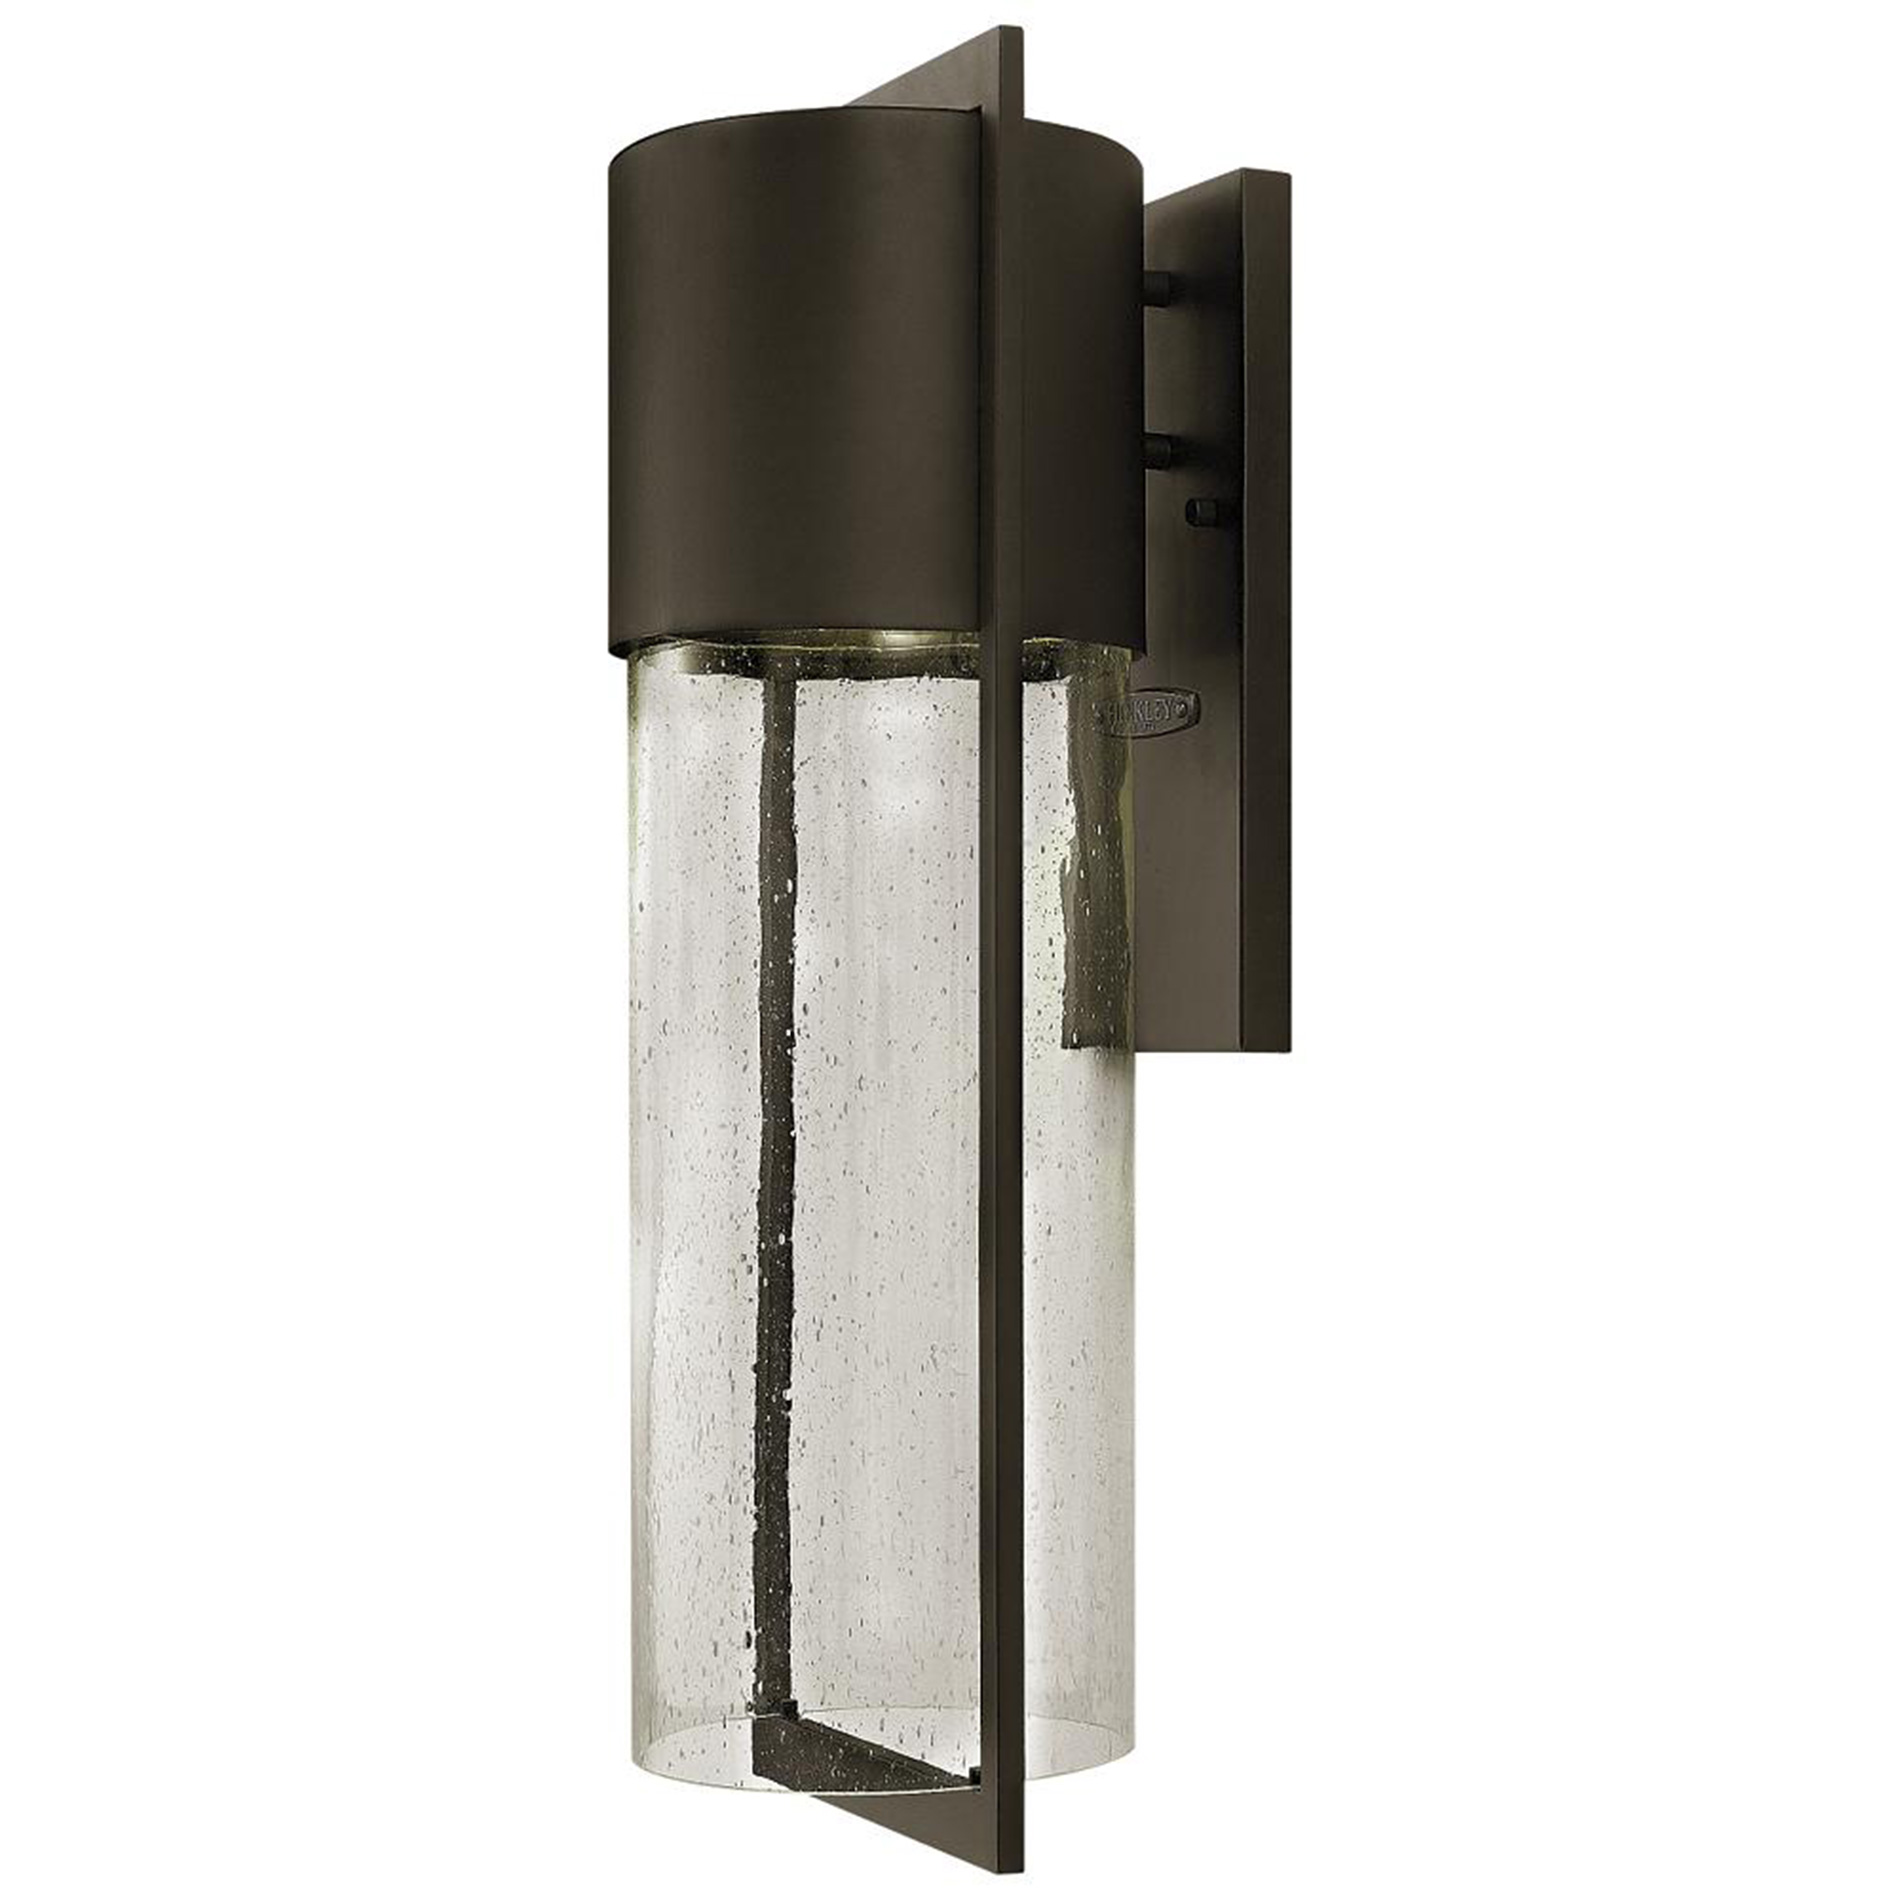 Shelter Outdoor Wall Sconce by Hinkley Lighting